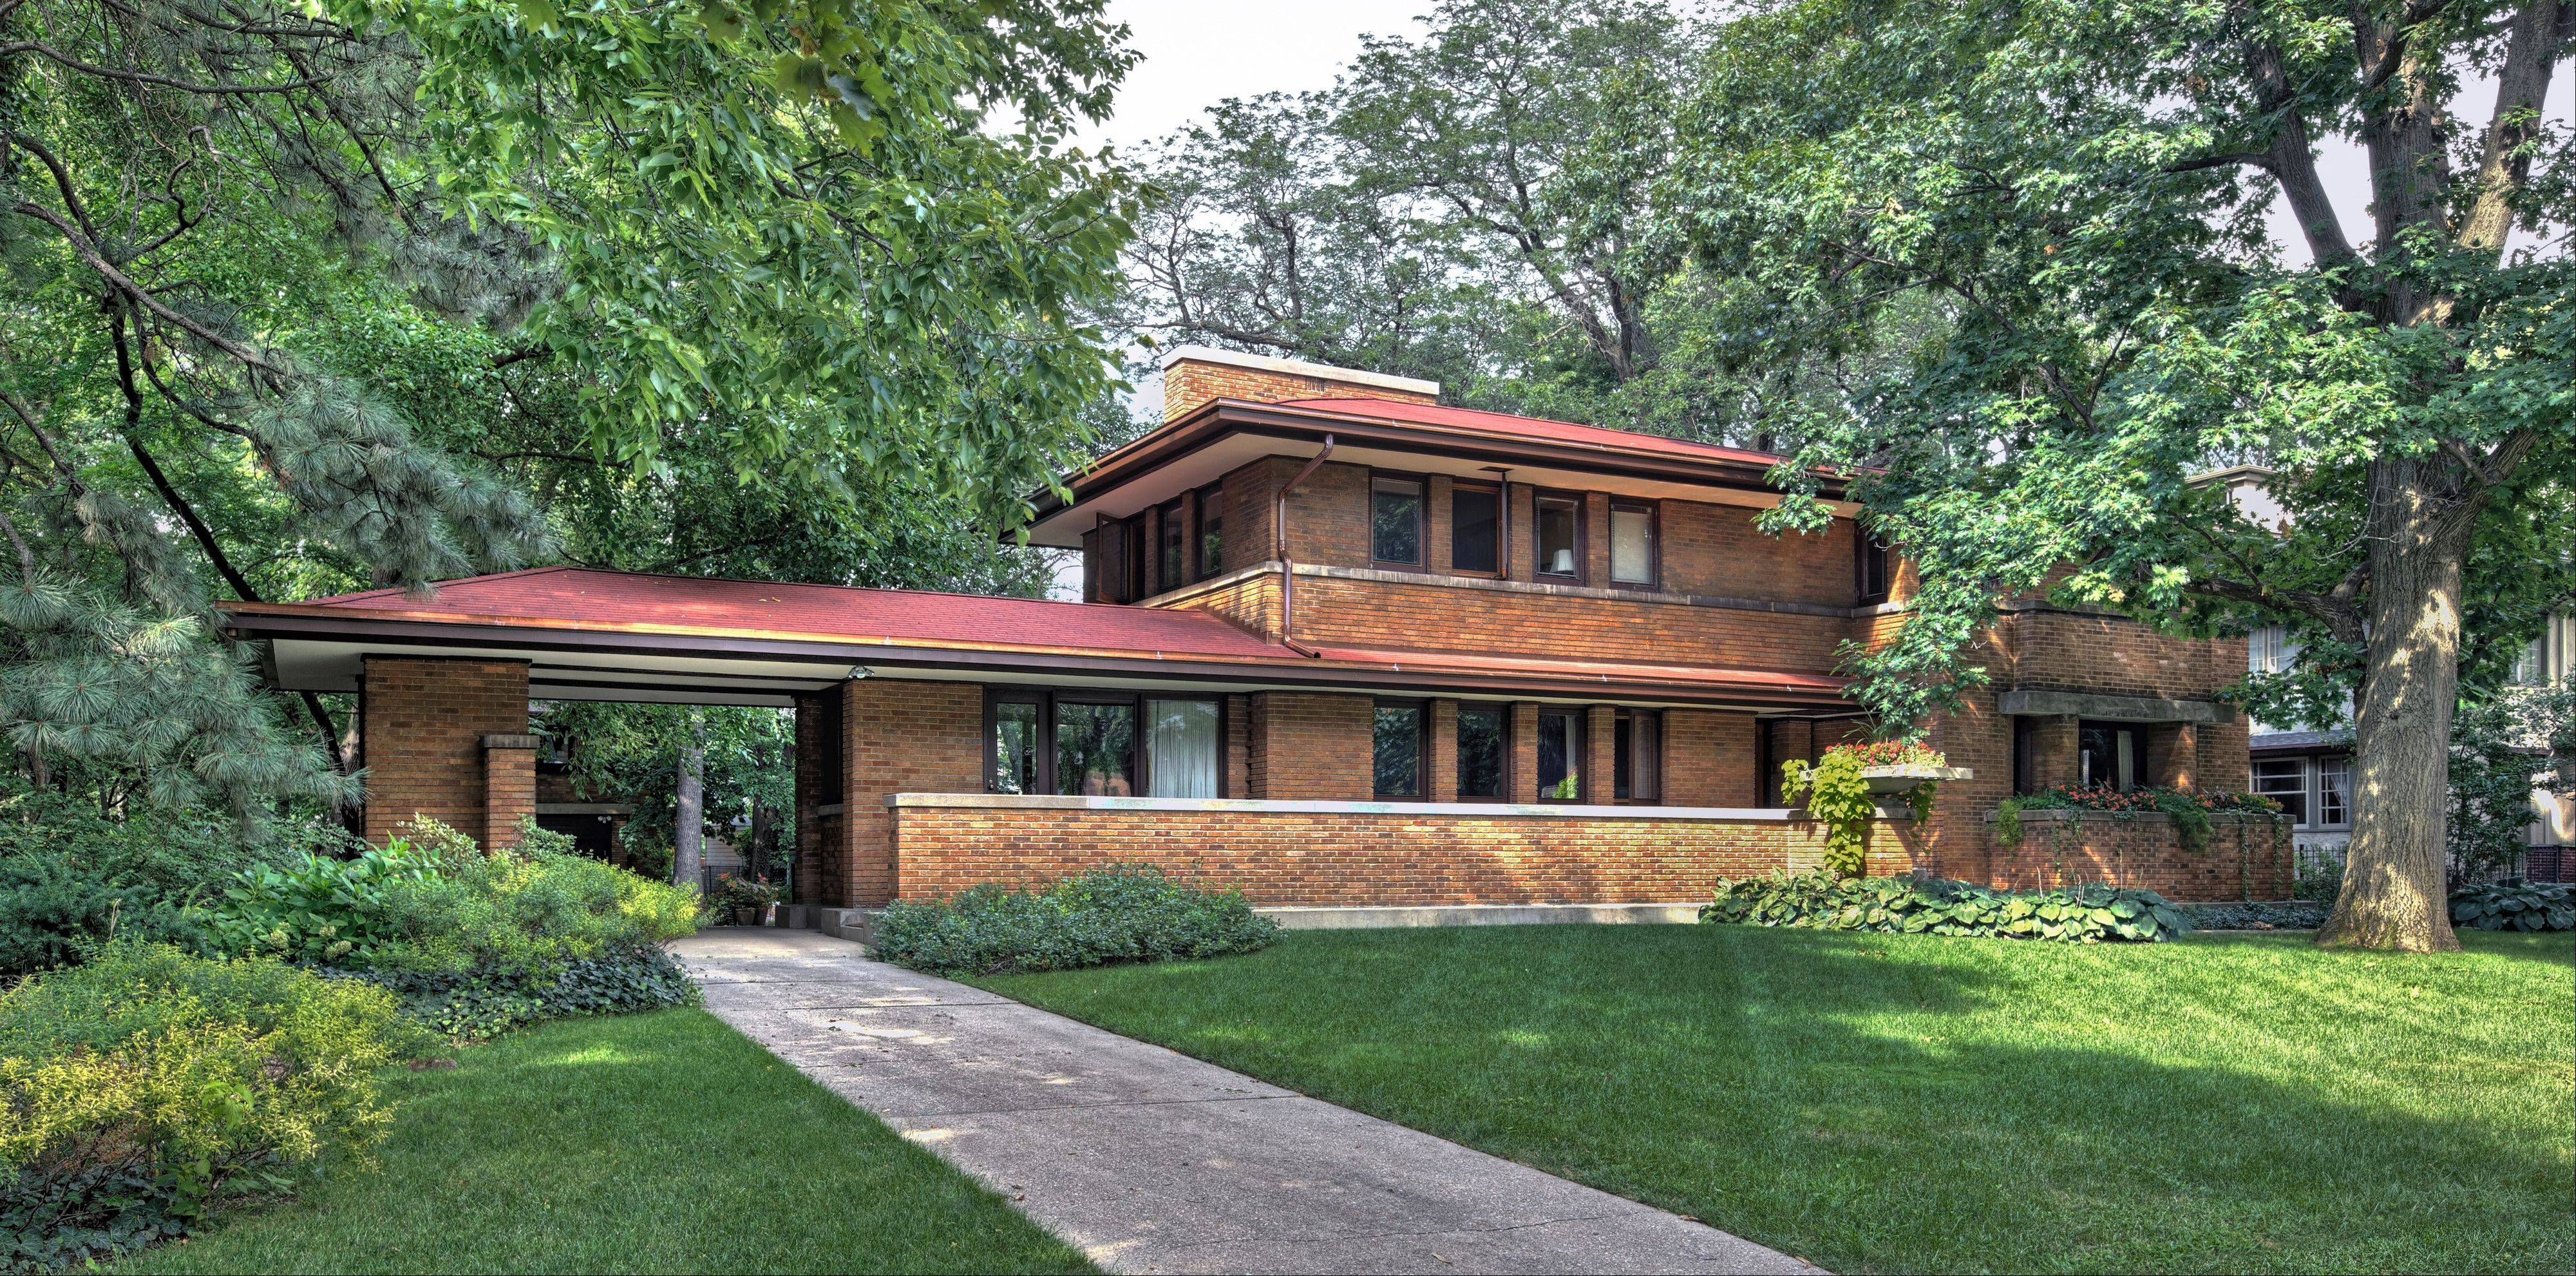 The Harry S. Adams House (1913), Frank Lloyd Wright's final Oak Park commission, will be on the Wright Plus 2013 Architectural Housewalk.